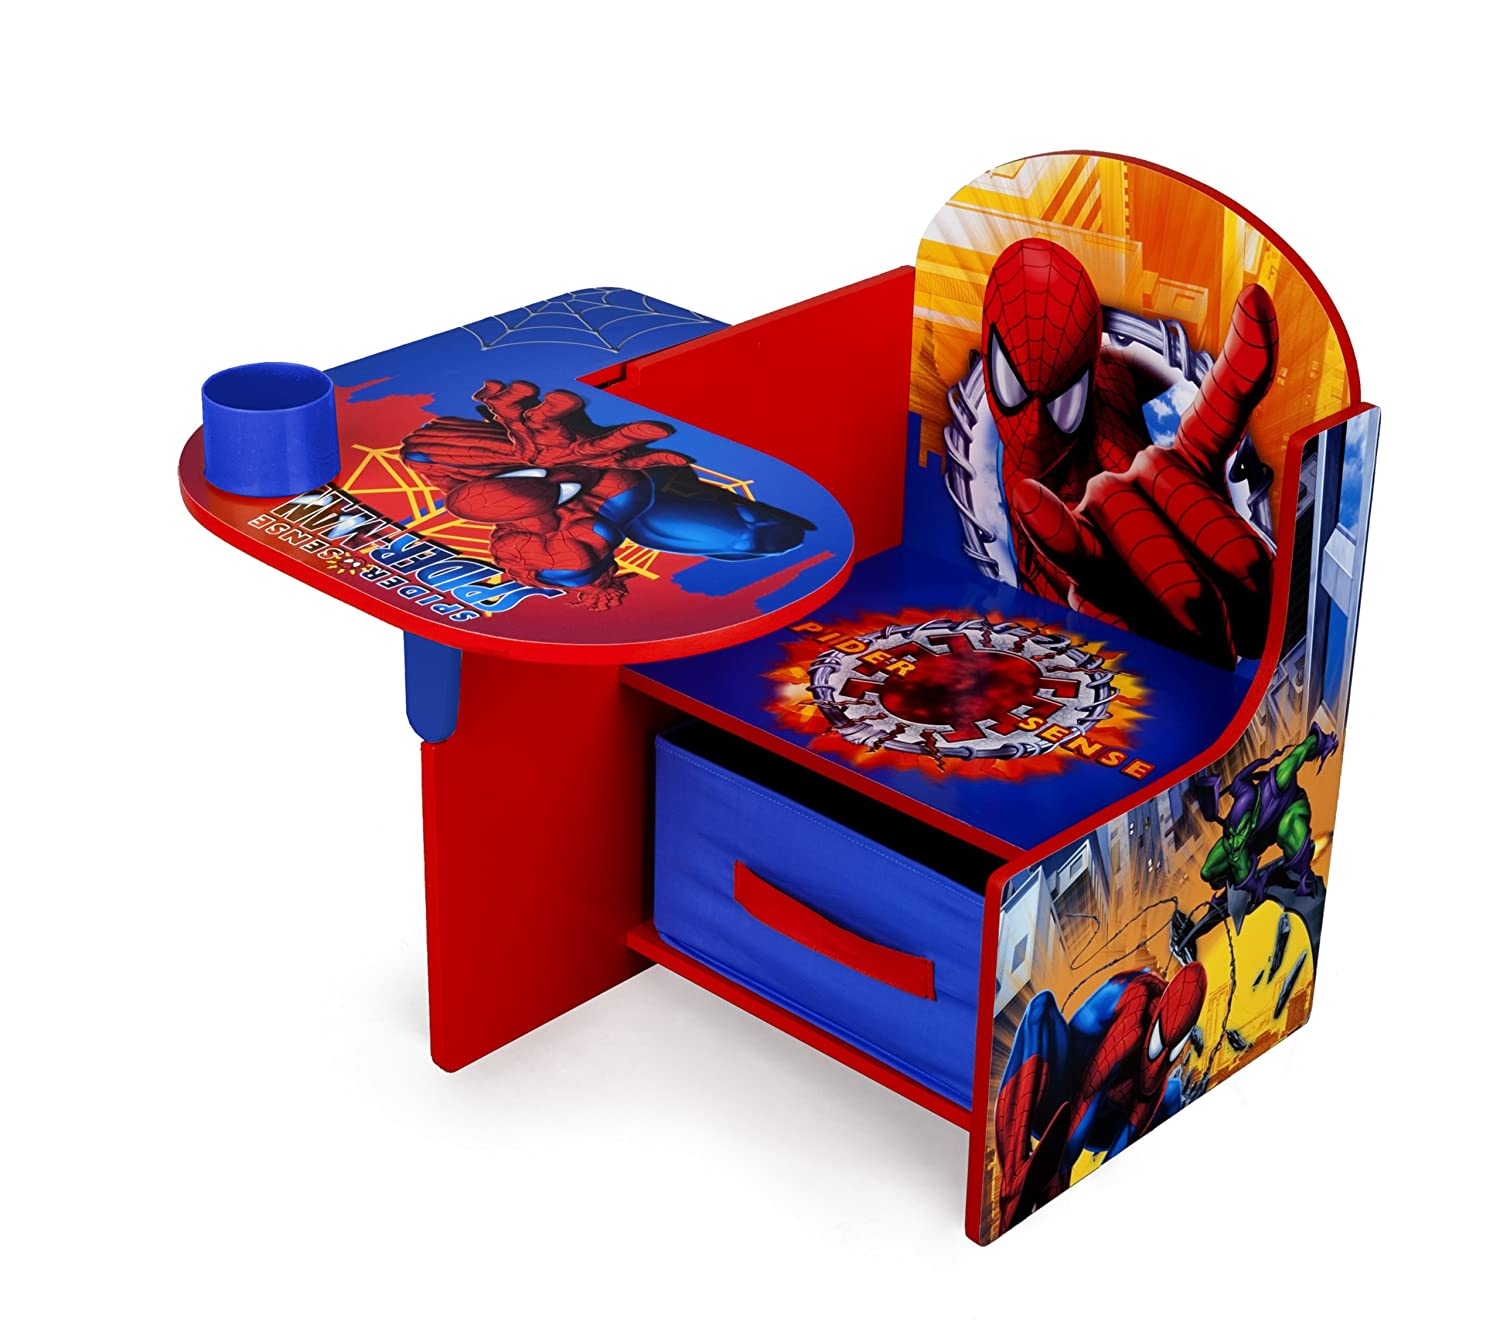 spiderman beds in bedroom bed bedding at bag a man reversible bonus spider tote set twin youth with toddler piece